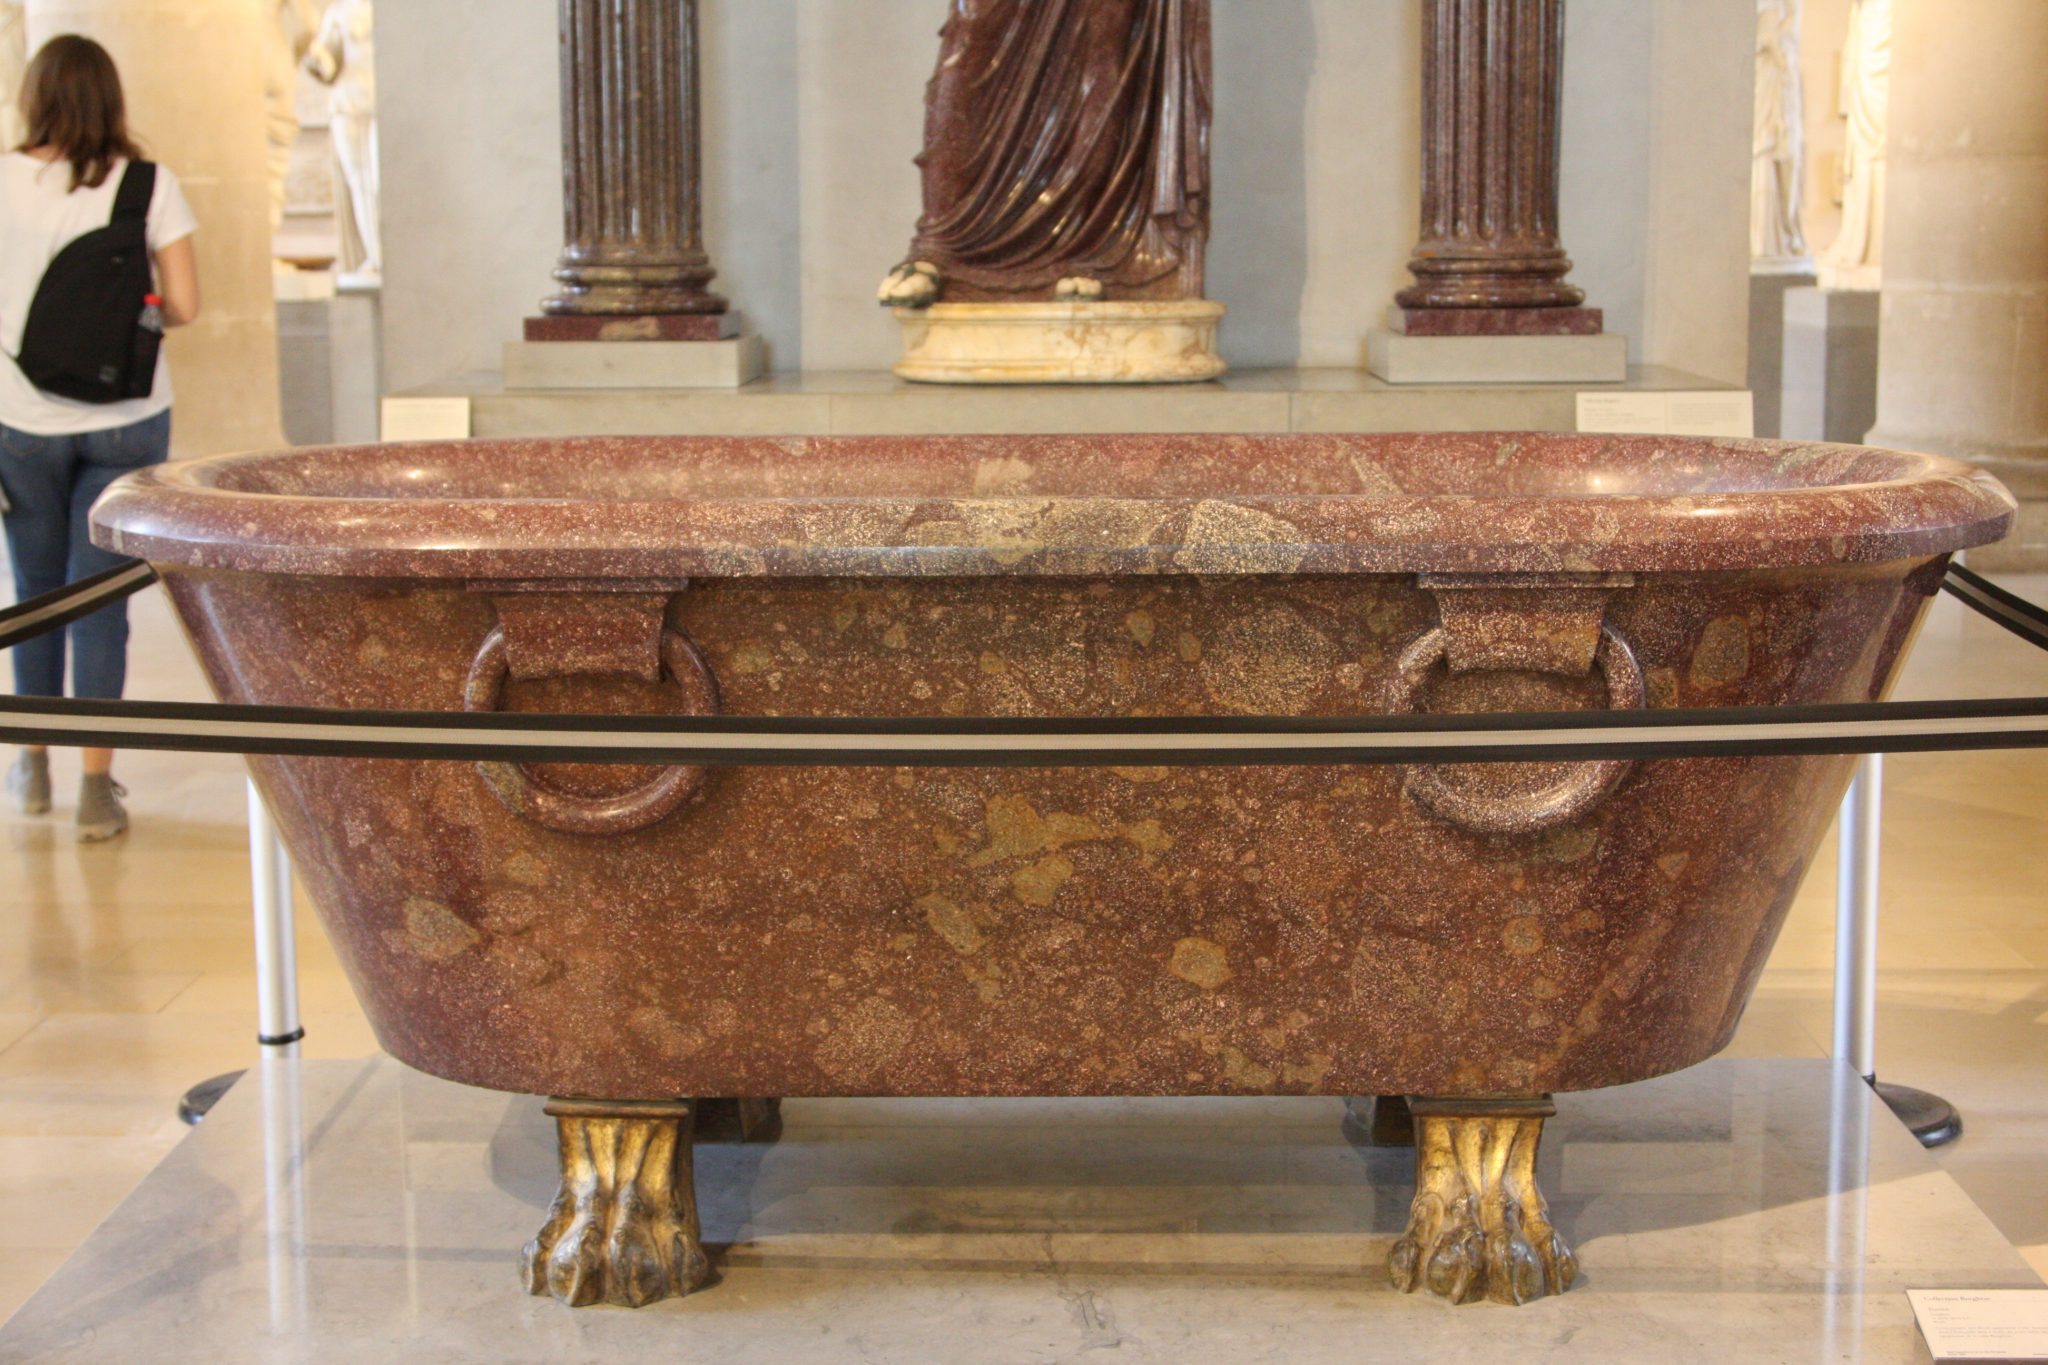 A Giant Marble Tub in the Louvre in Paris